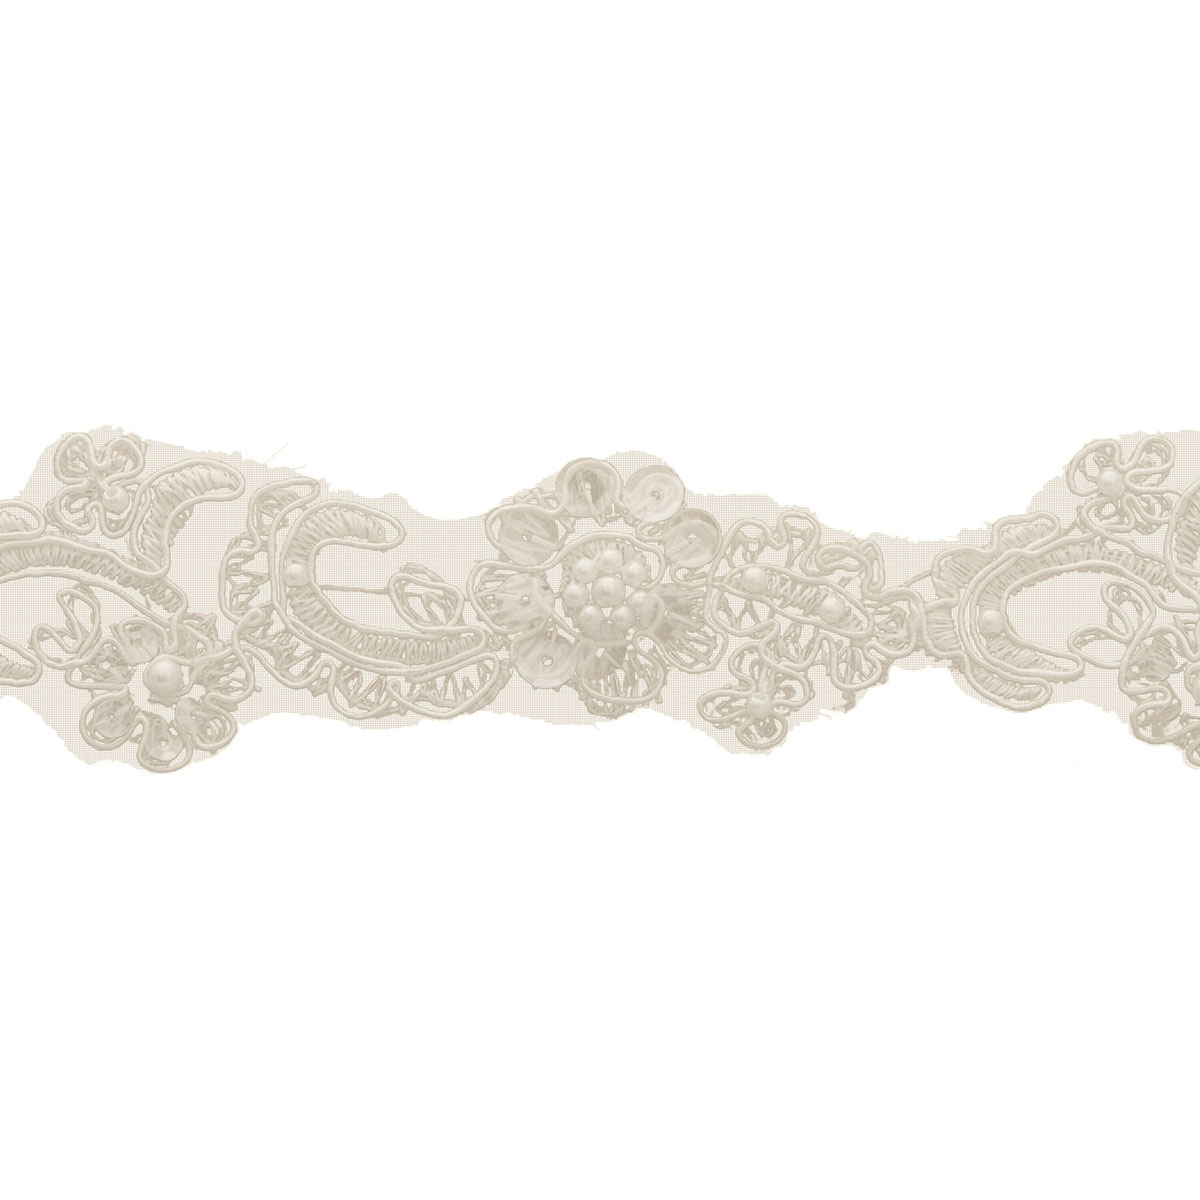 Narrow Bridal Lace Beads 10Yd Ivory